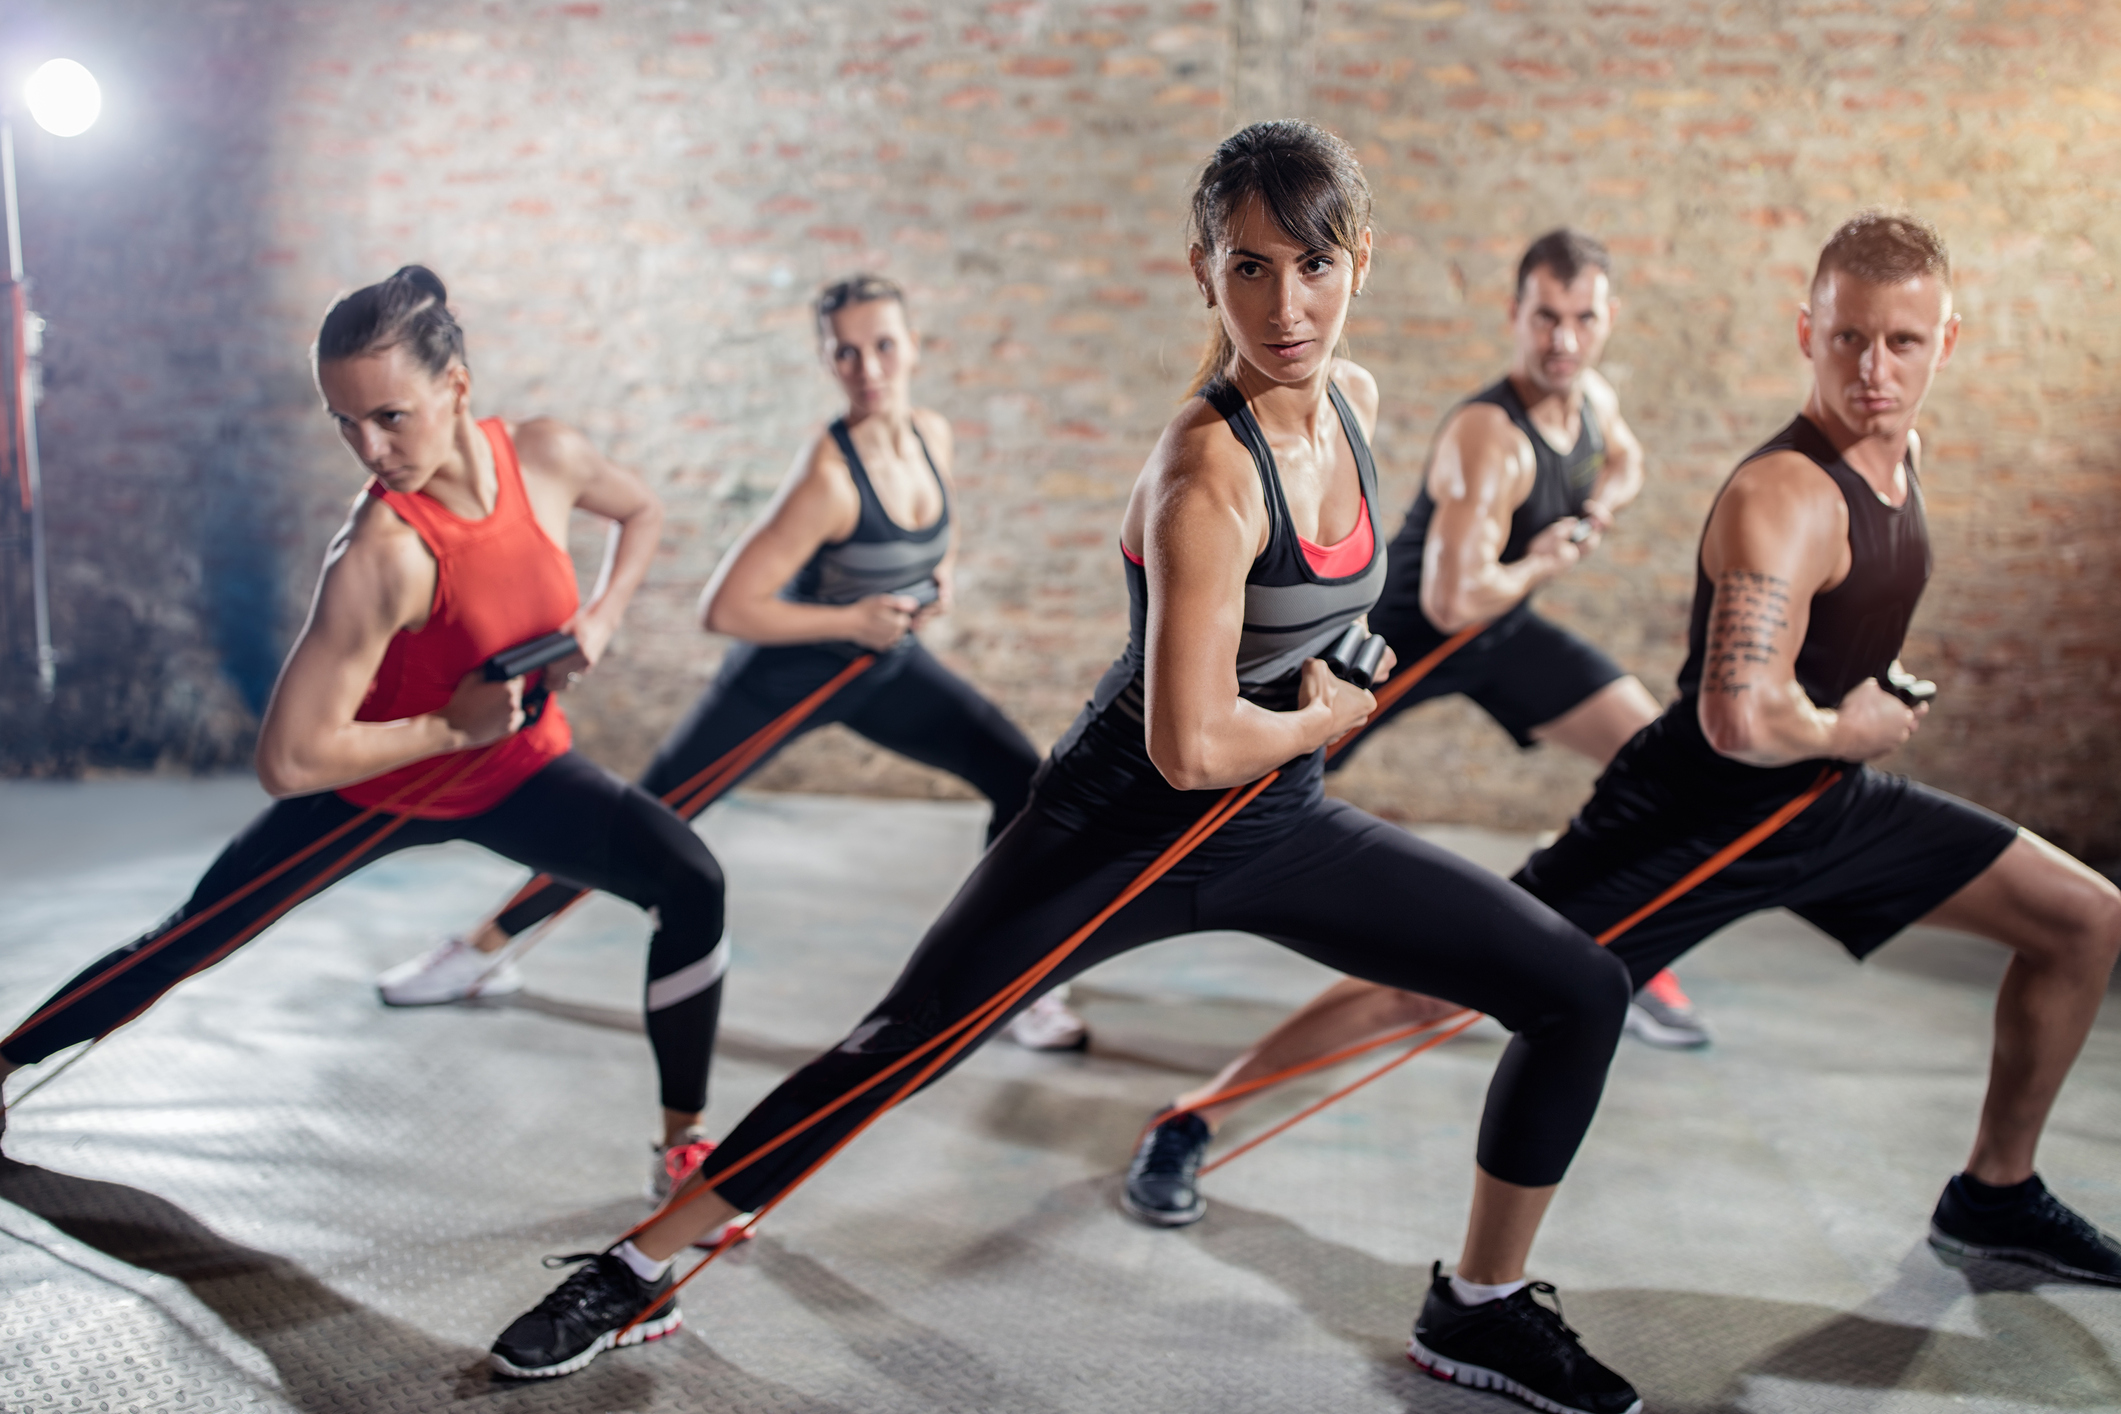 healthy people on group training with resistance band